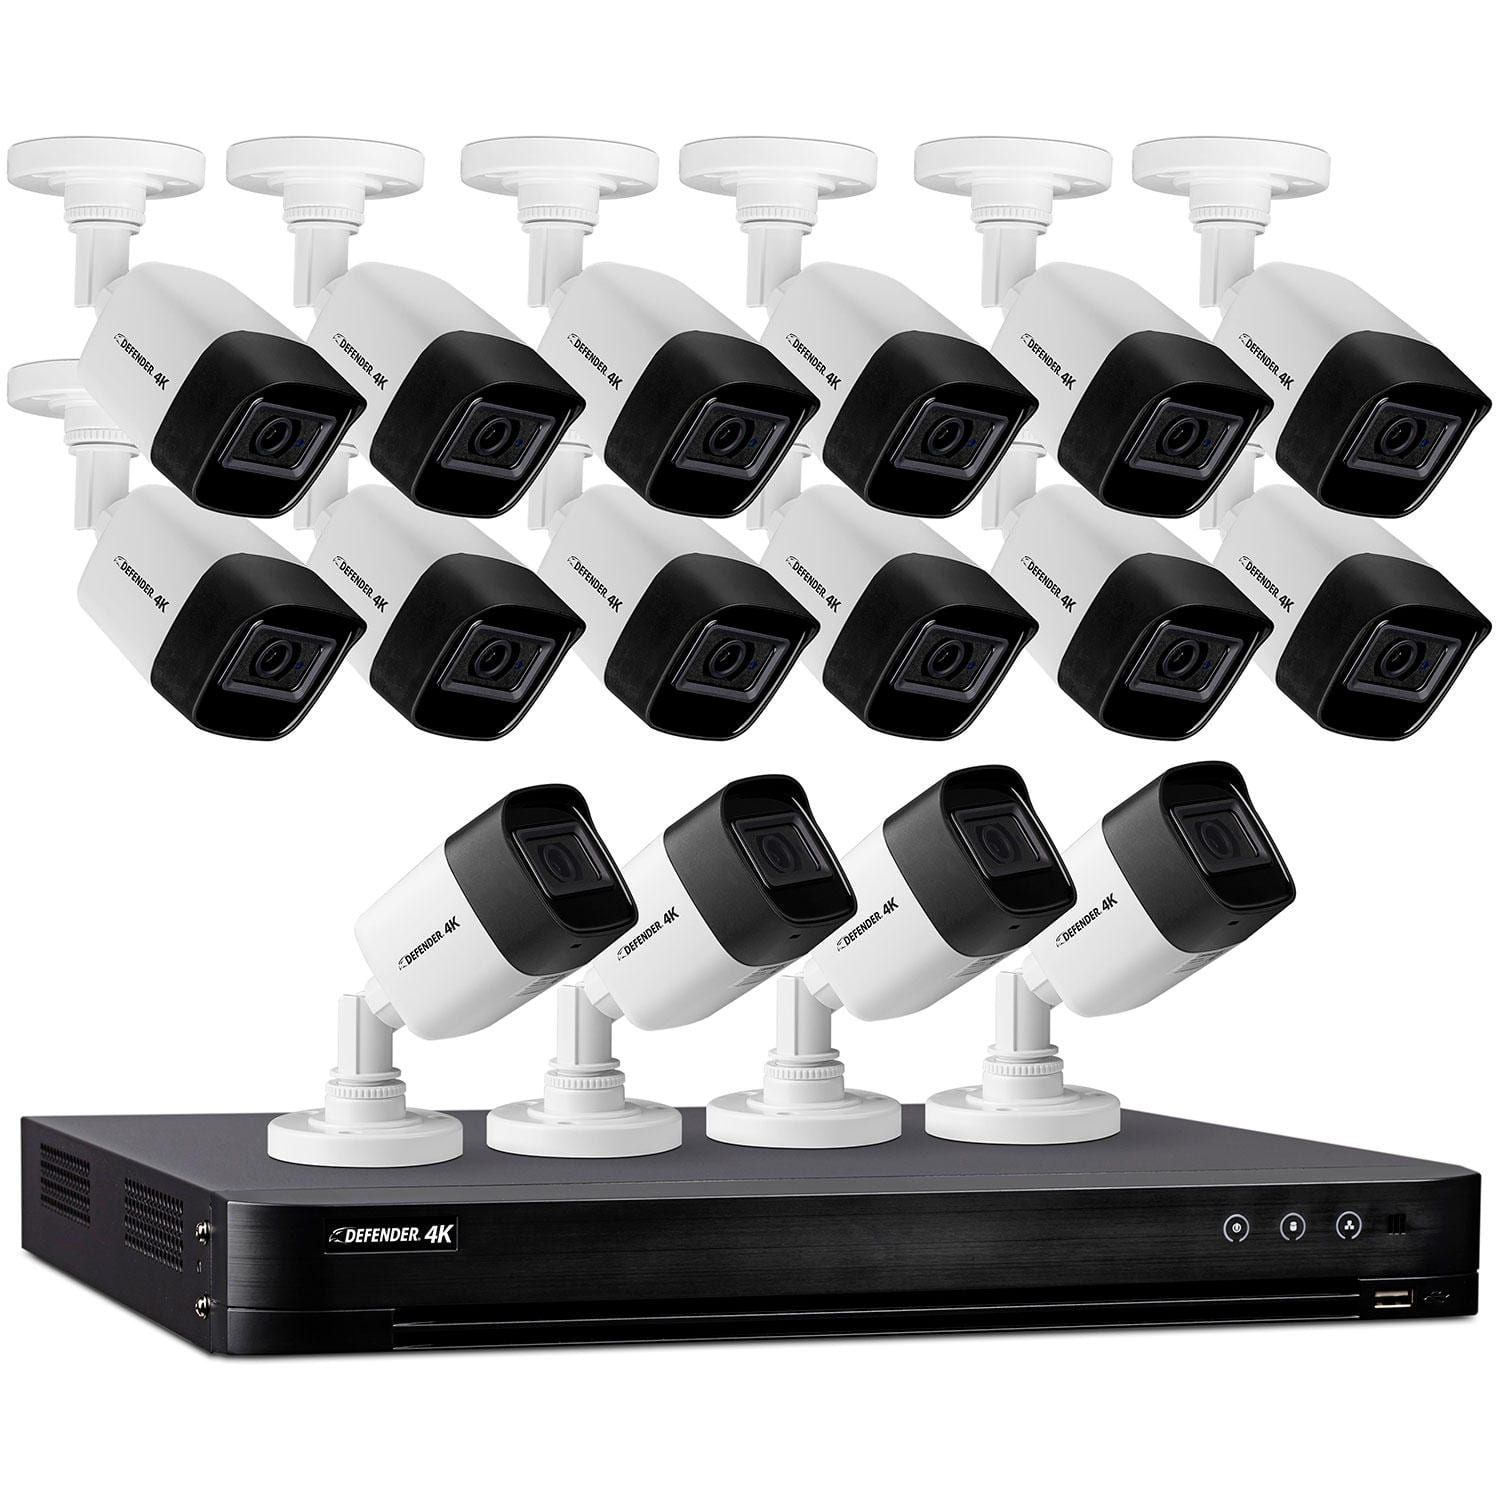 Defender 4K Resolution 4TB Security System w/ 16 Night Vision Cameras $799 + Free Shipping